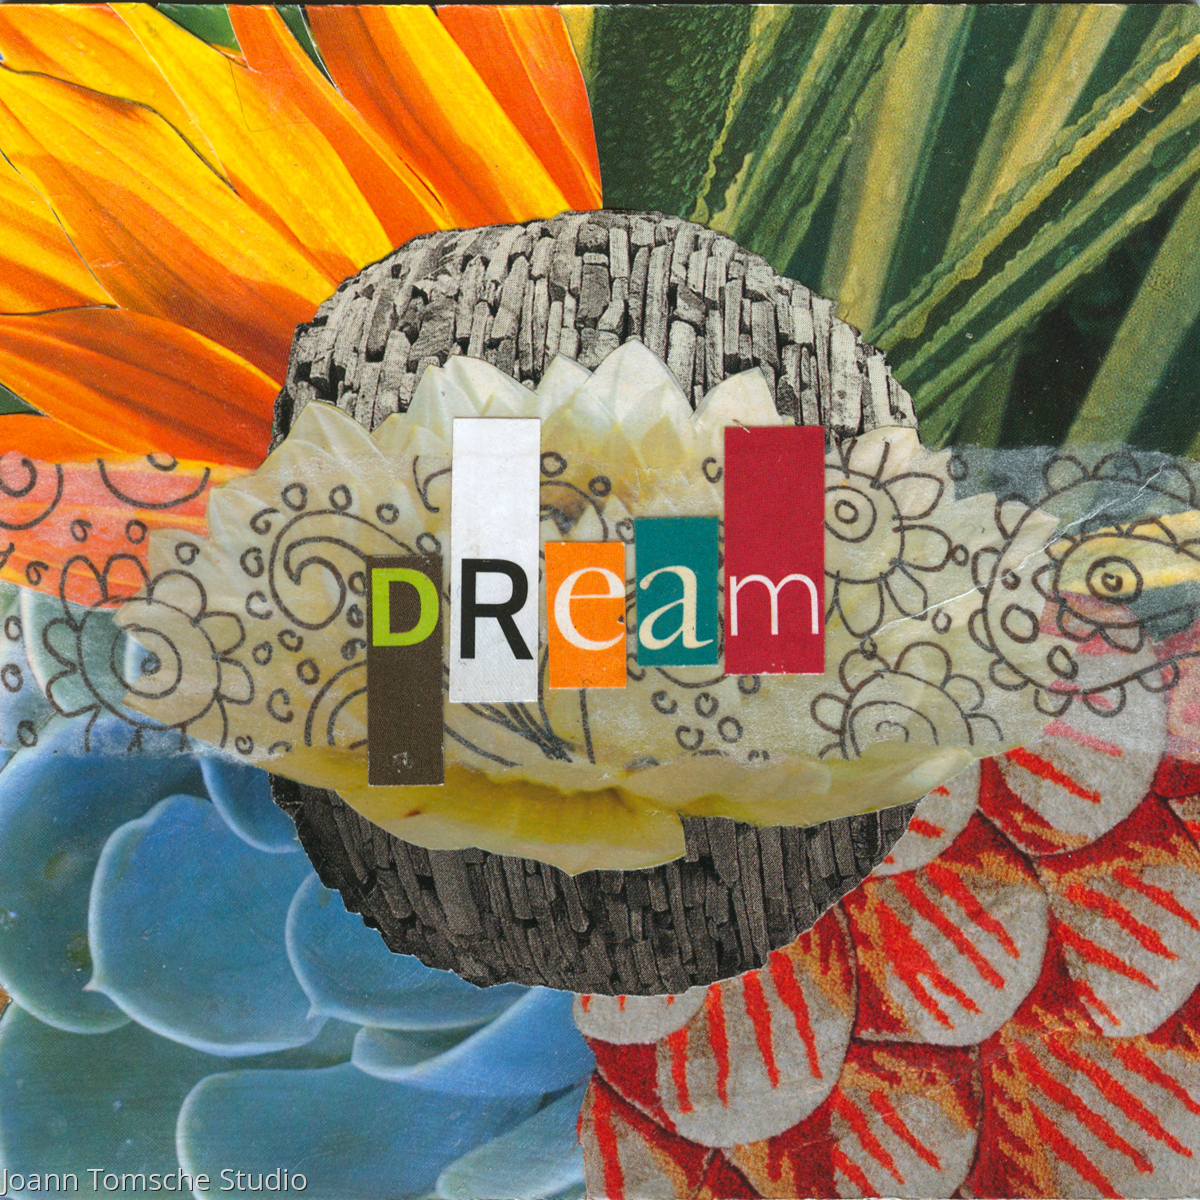 Dream art tile (large view)